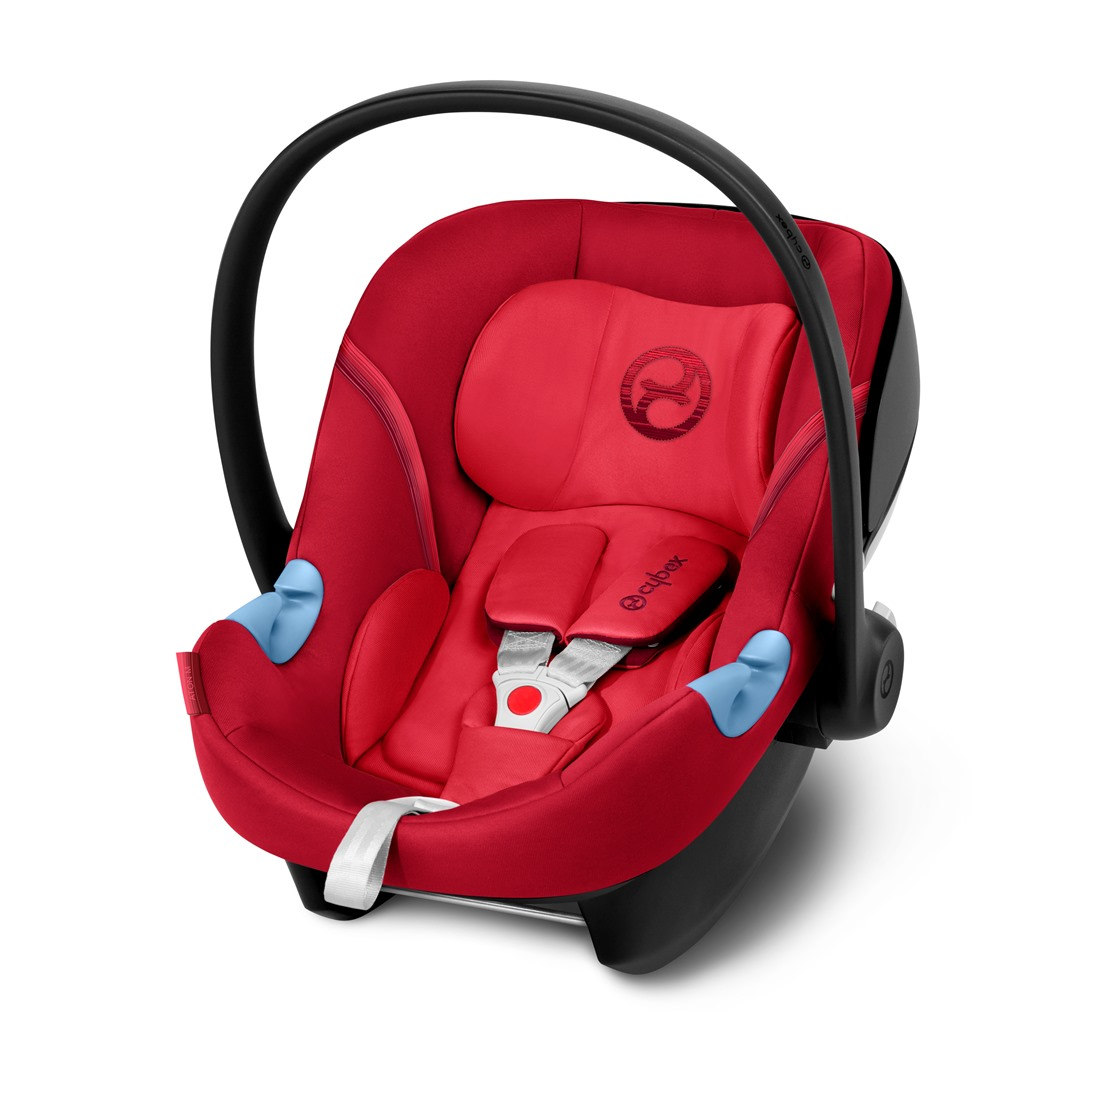 Autosedačka Cybex Aton M Rebel red